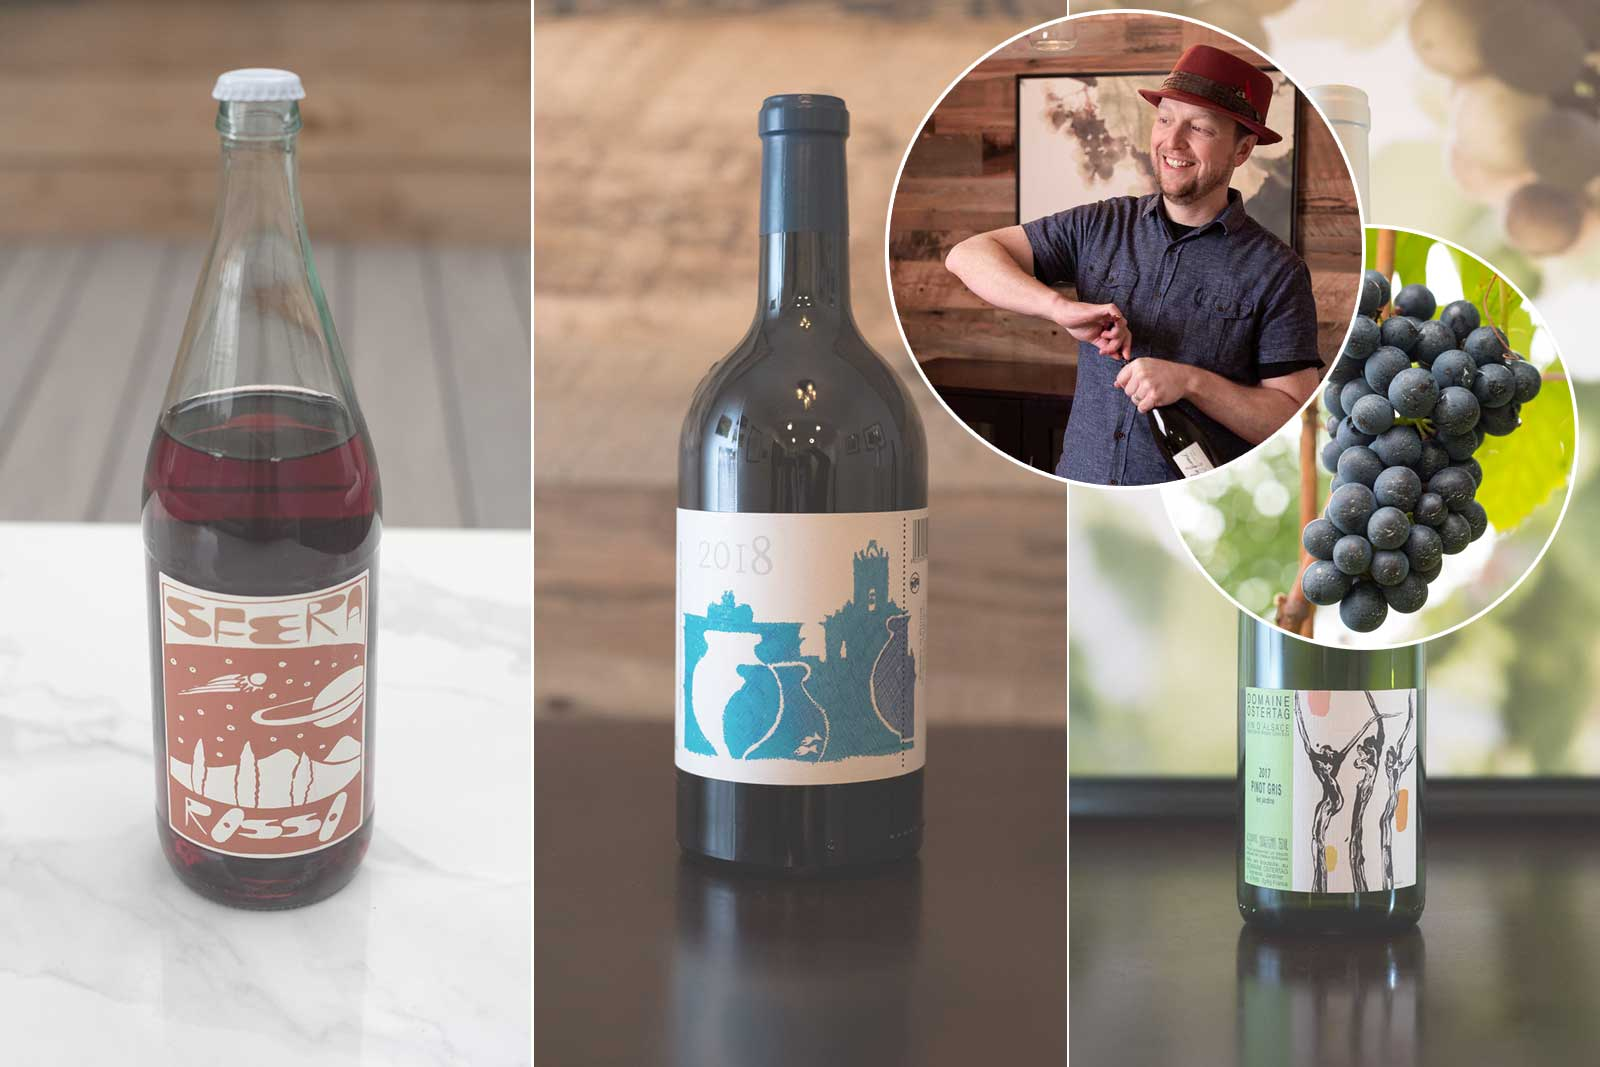 Three bottles of natural wine and wine writer Kevin Day, for an upcoming Natural Wine Virtual Tasting